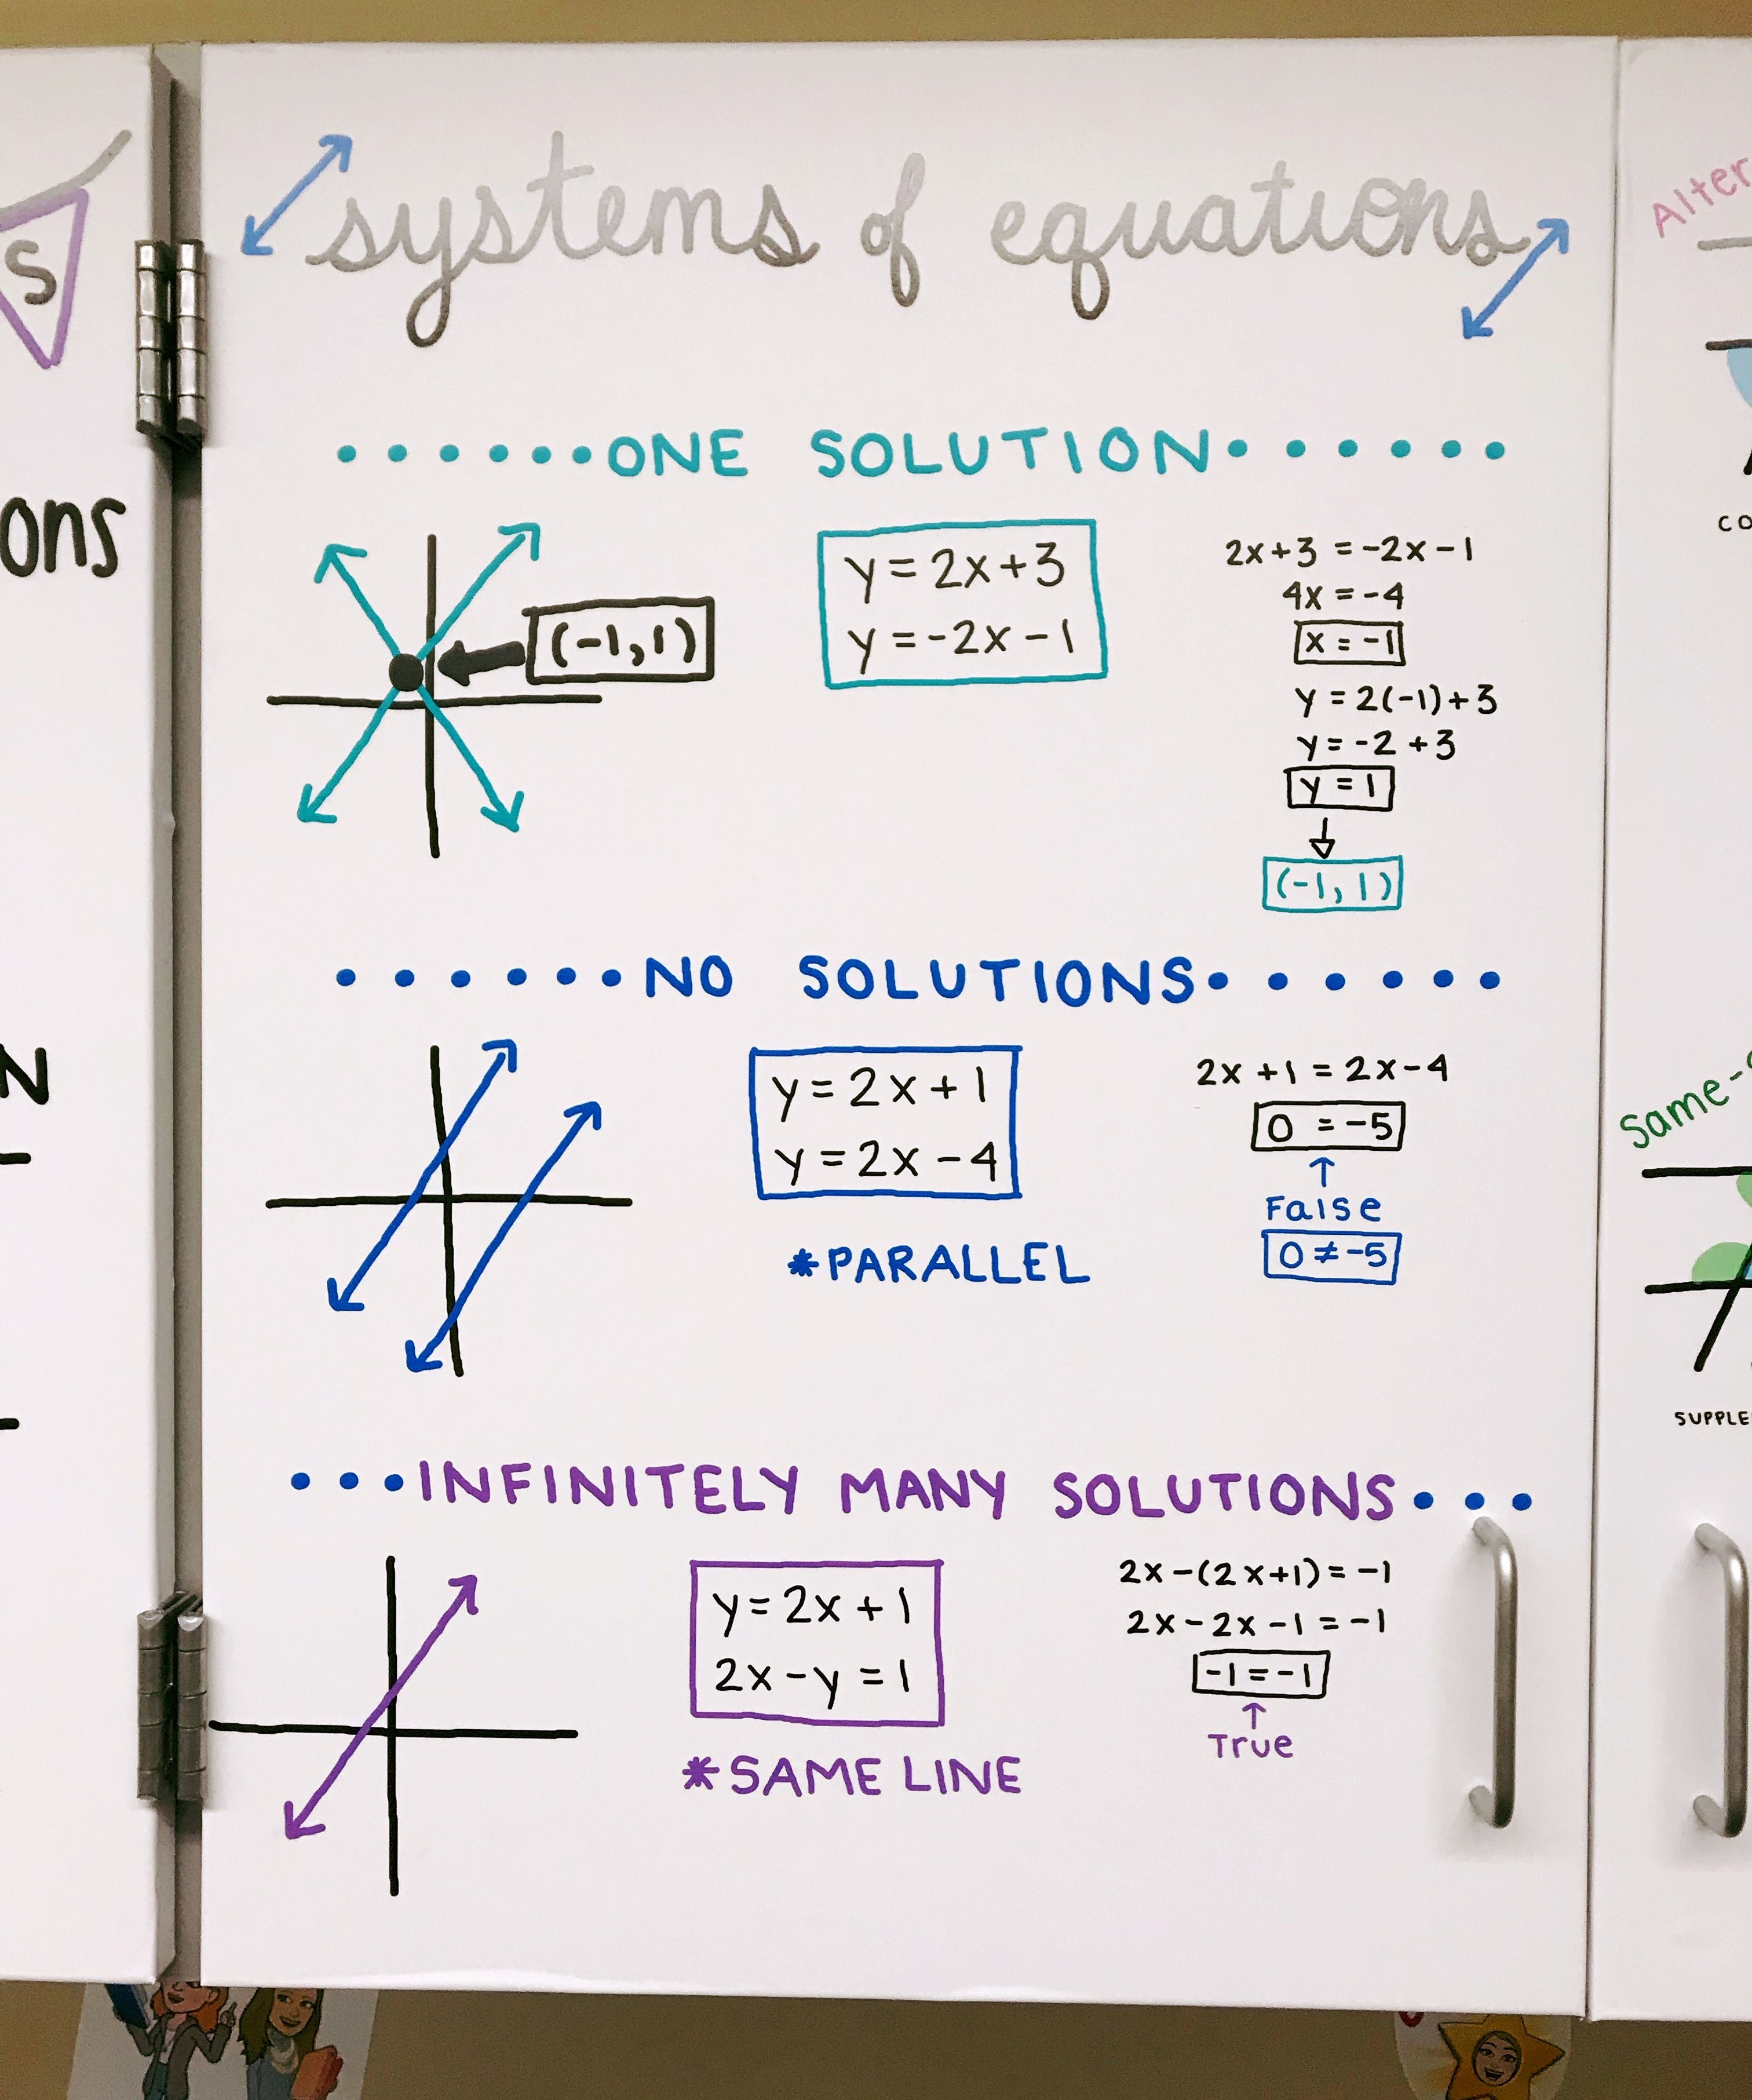 Systems Of Equations Cases Anchor Chart Poster By Buynomials Teachers Pay Teachers Math Notes Math Tutorials Systems Of Equations [ 3624 x 3024 Pixel ]